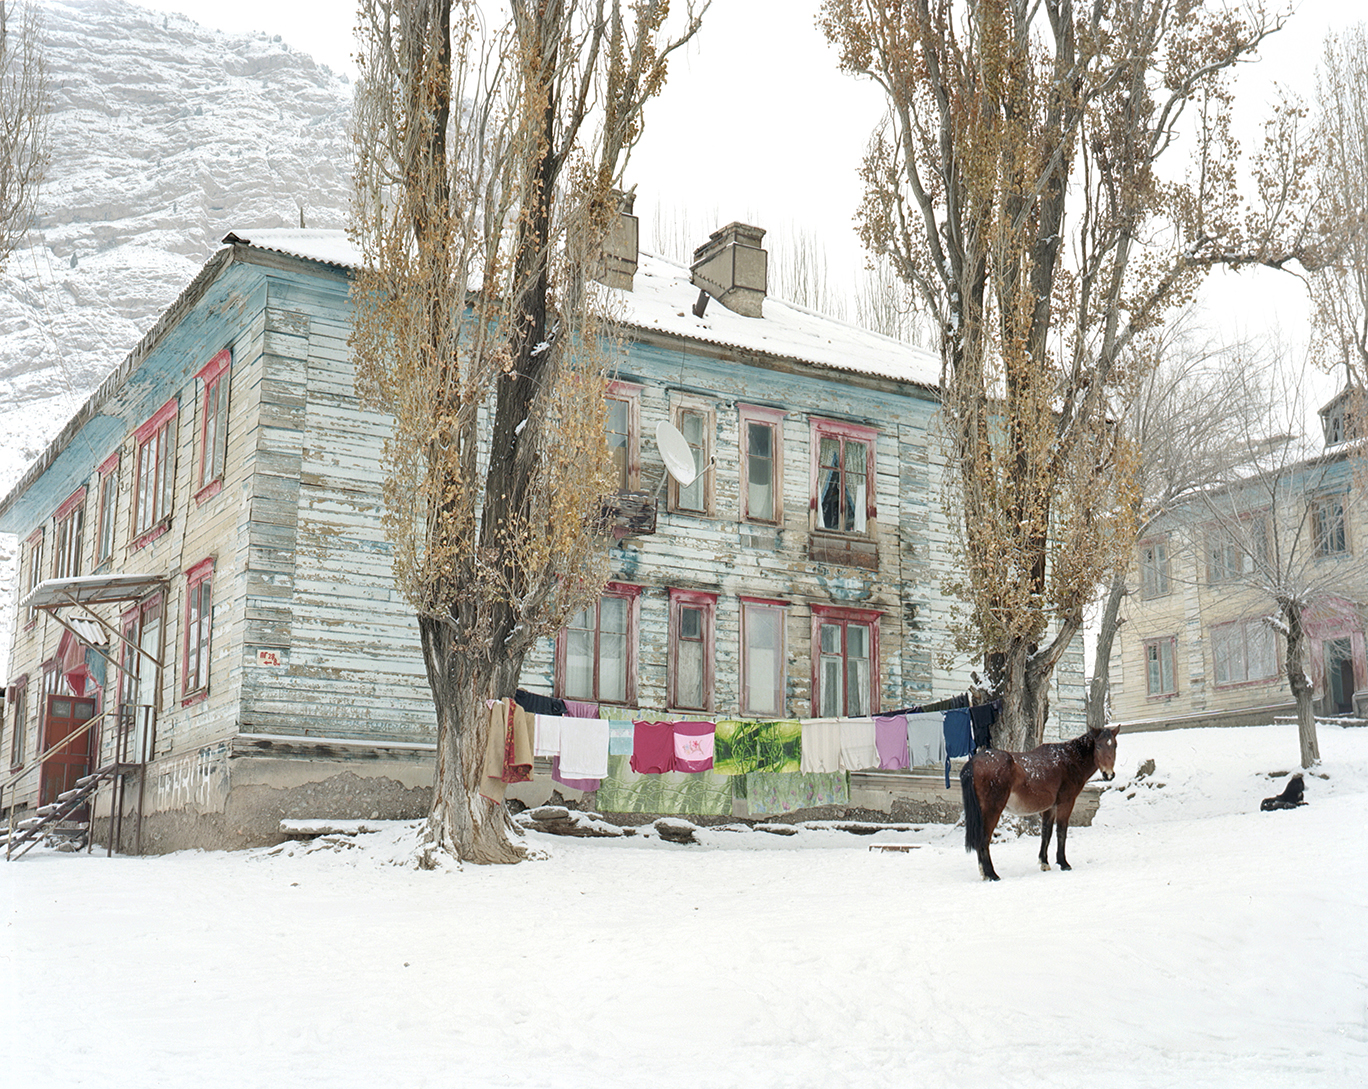 A Glimpse at Life in Kyrgyzstan